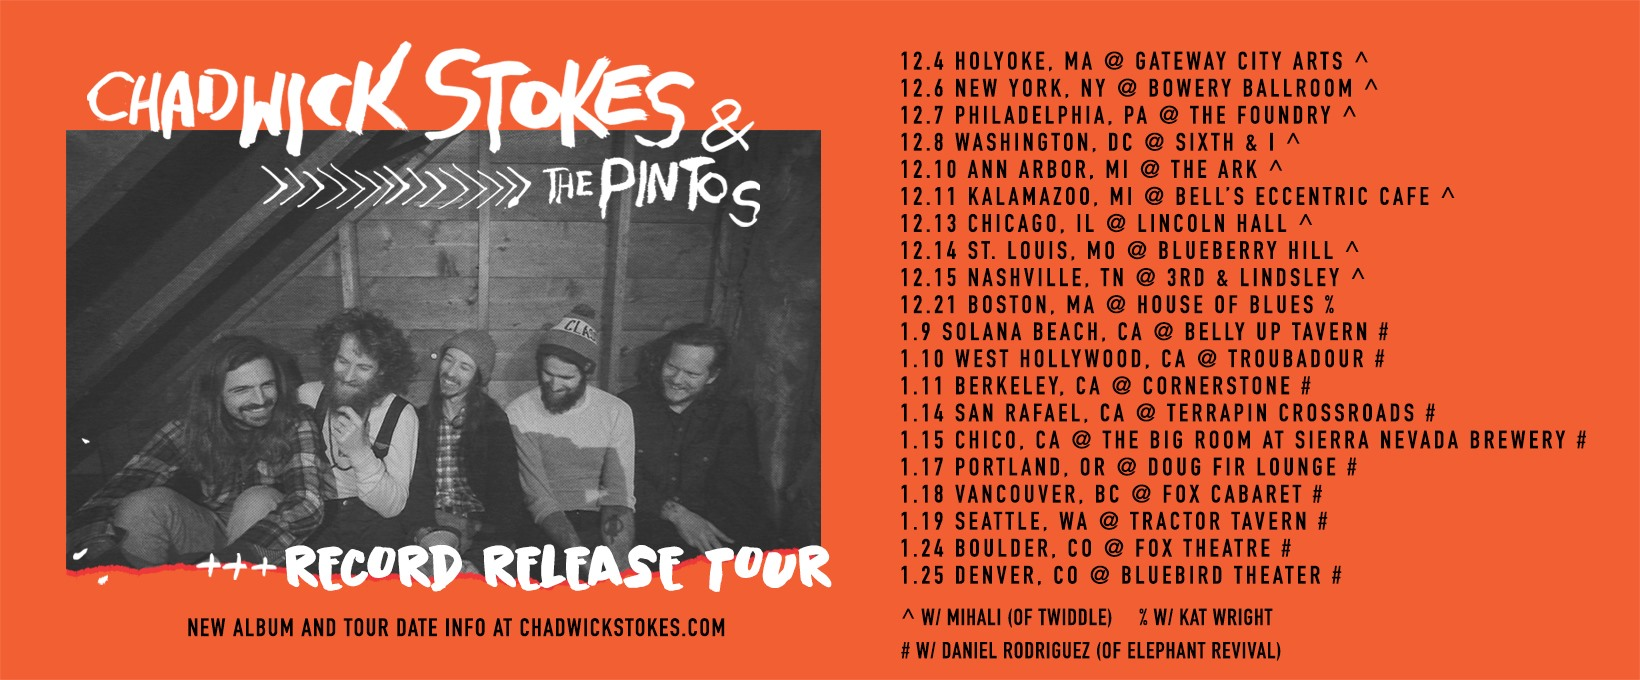 Chadwick Stokes & The Pintos Kick Off Winter Tour Today!